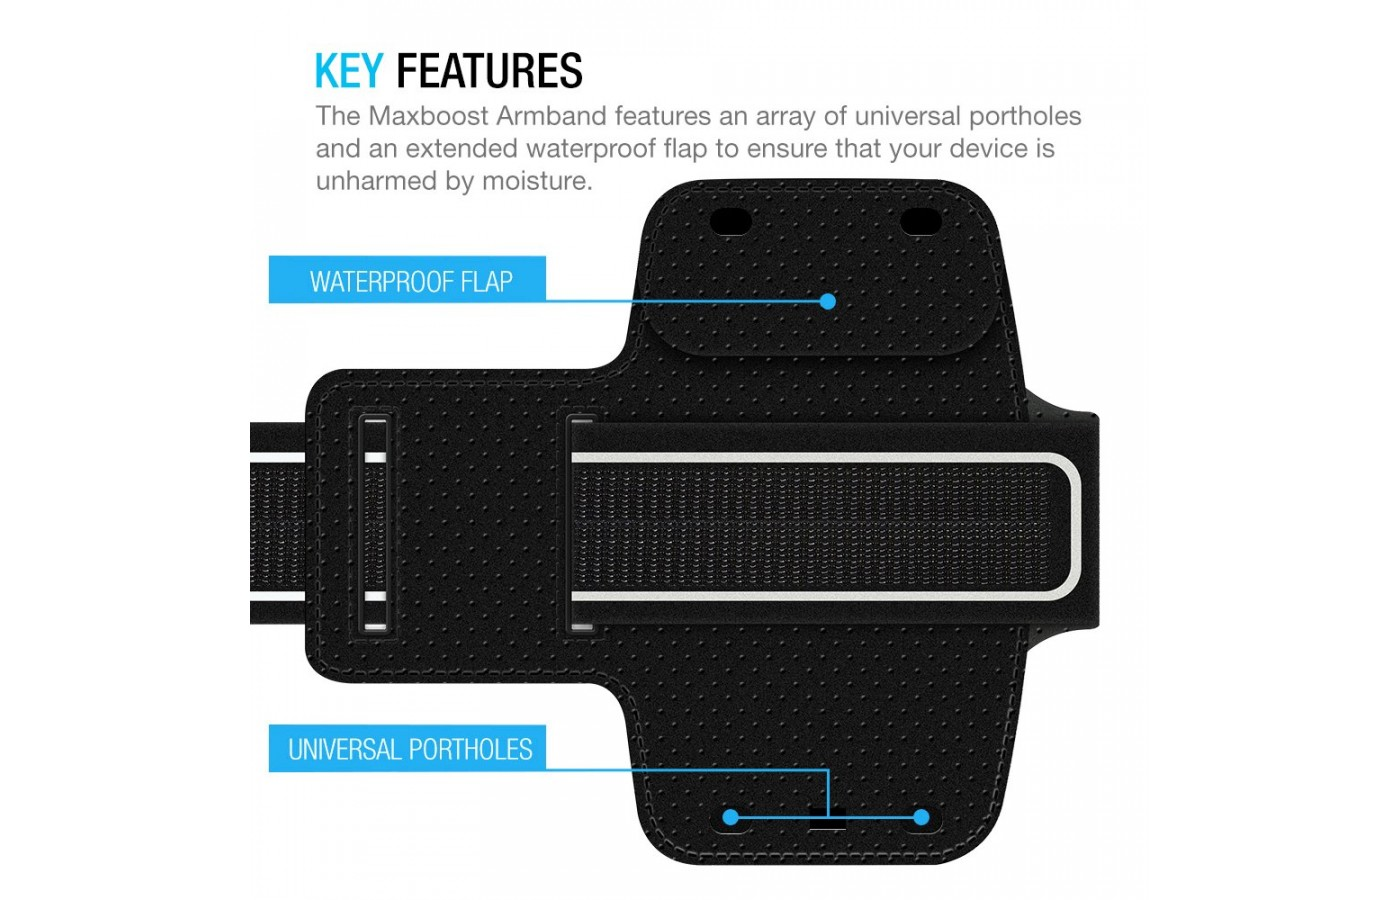 Maxboost Armband key features